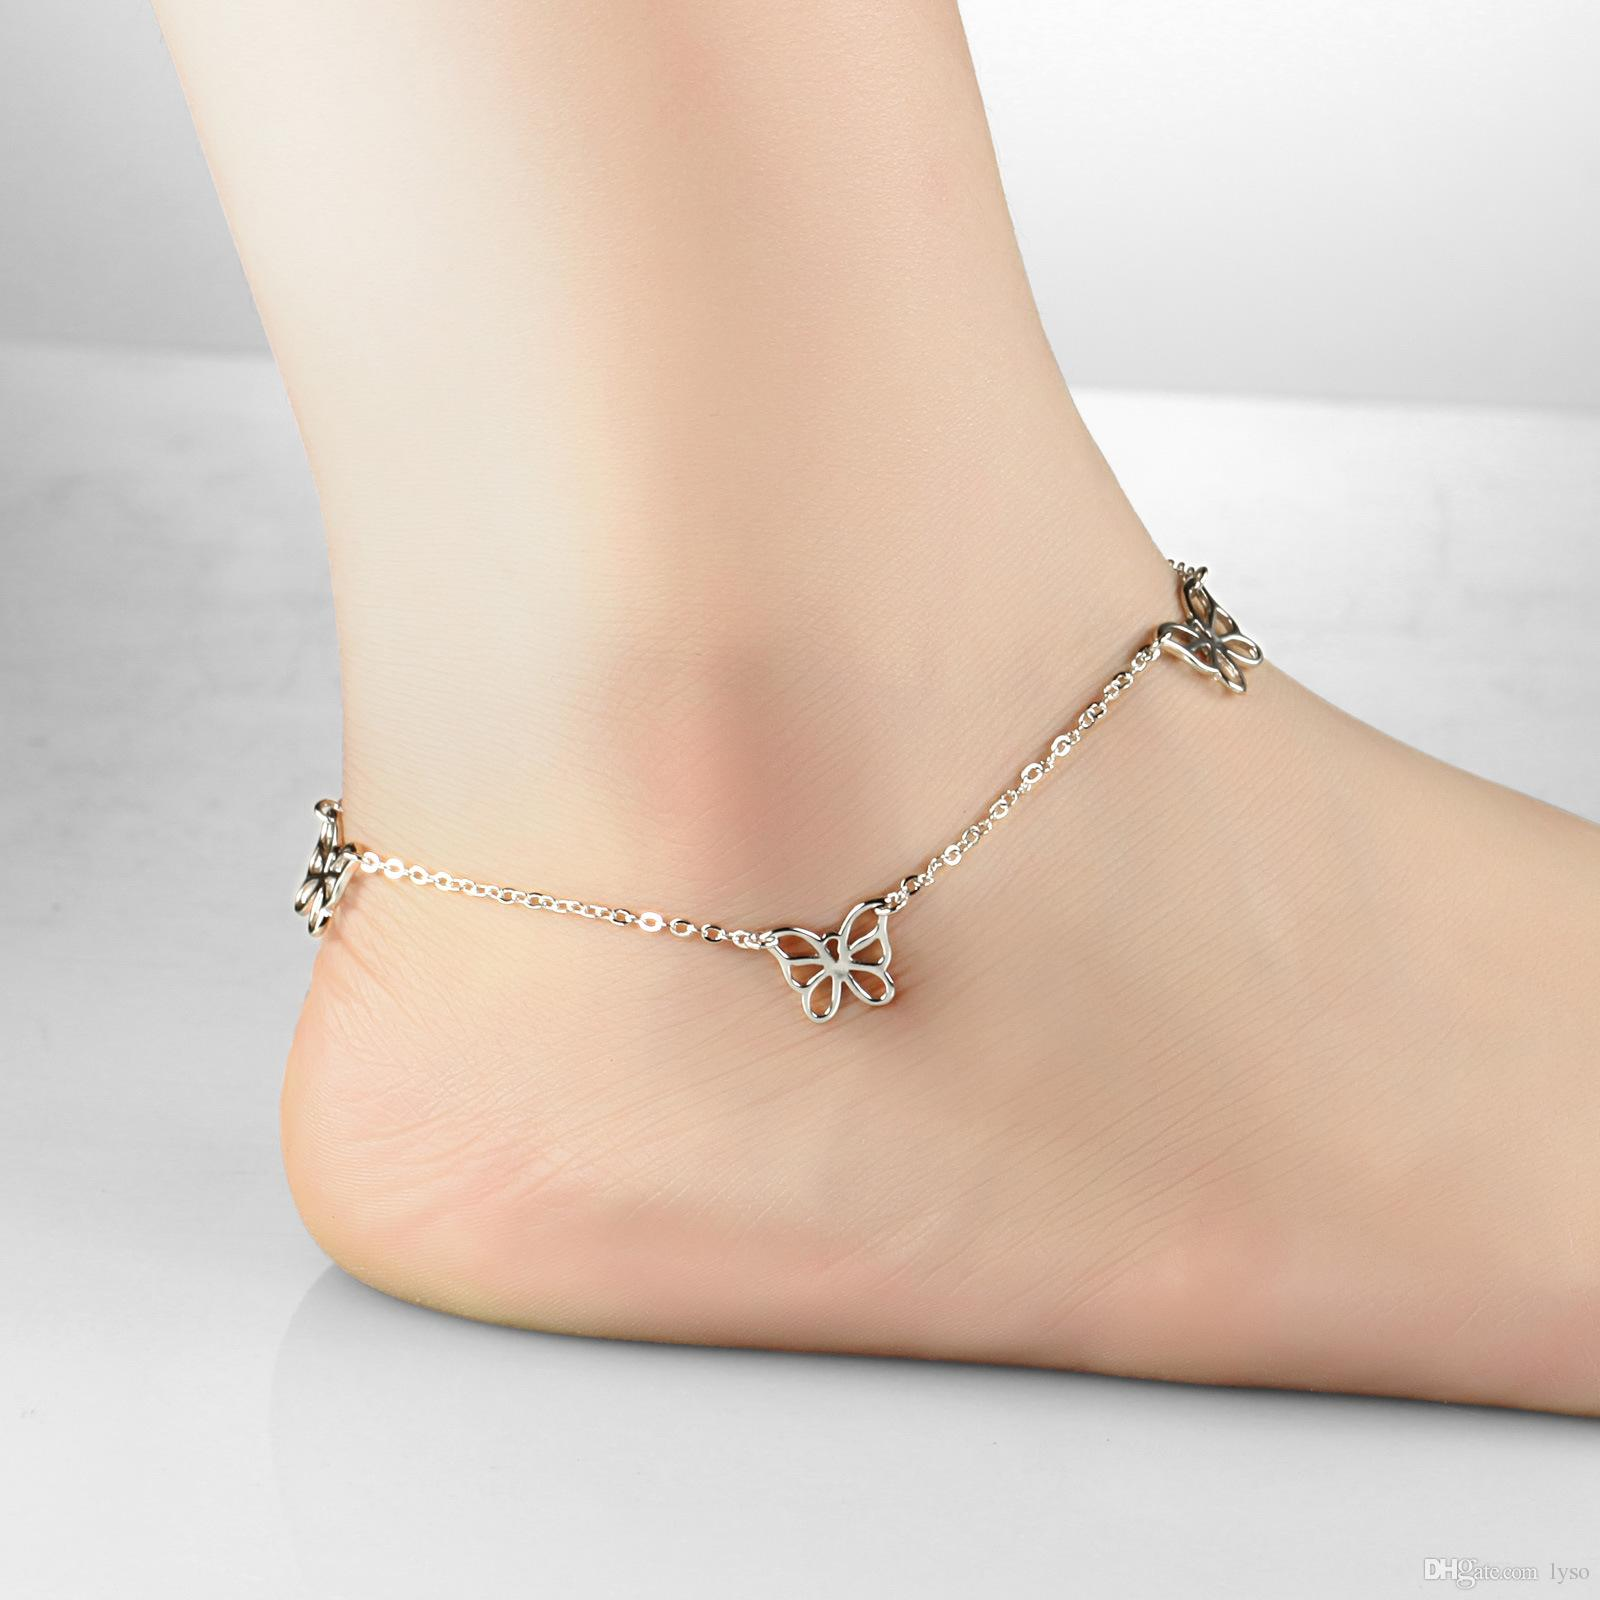 caribbean st designs anklet islands handmade jewelry ib croix shop